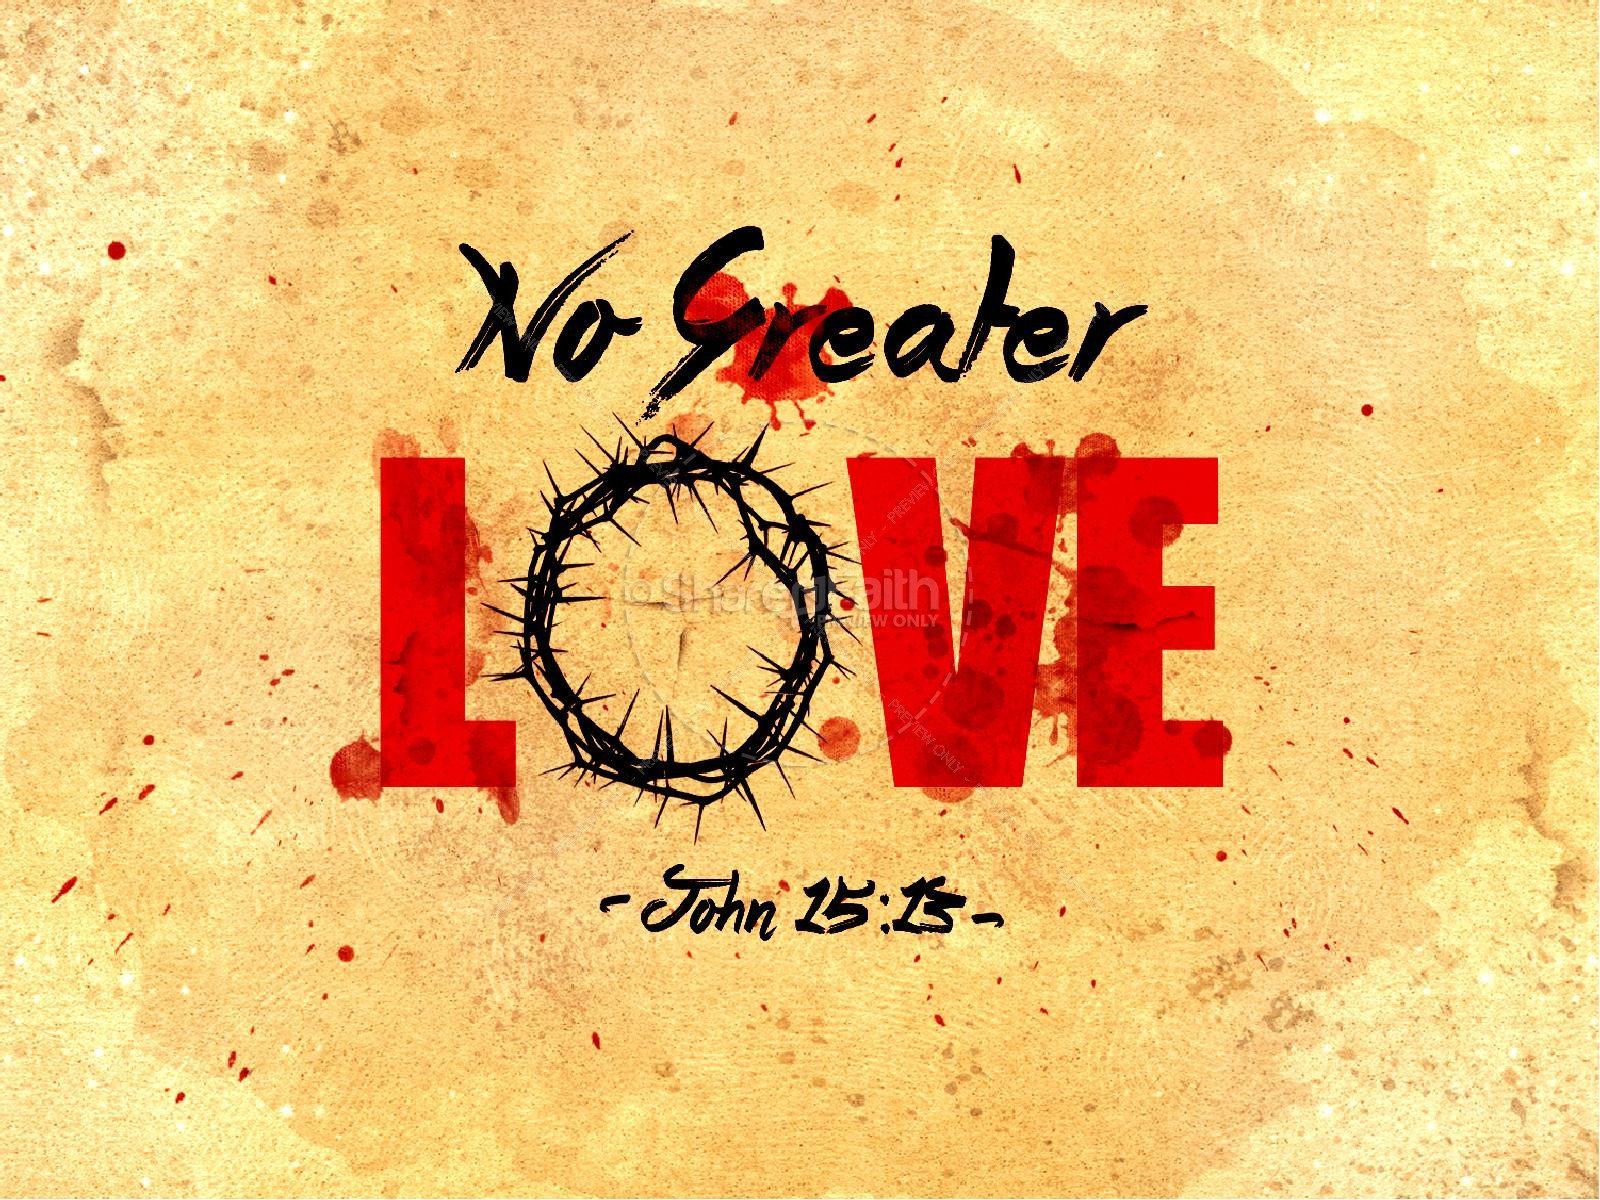 No greater love church powerpoint template powerpoint sermons no greater love church powerpoint template toneelgroepblik Gallery